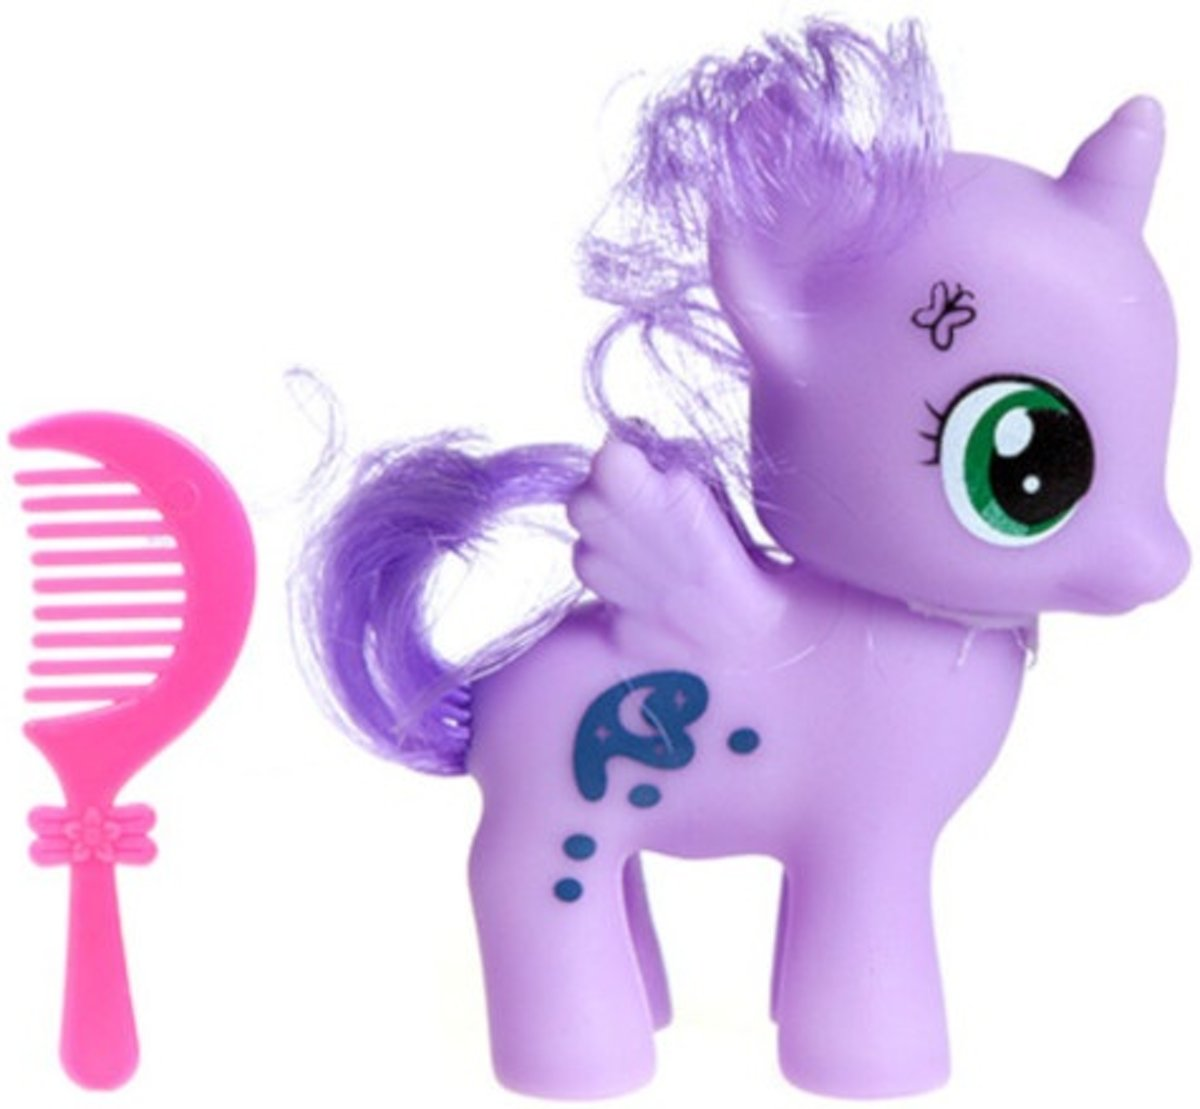 Pms Speelset Magical Pony 6 Cm Paars 2-delig